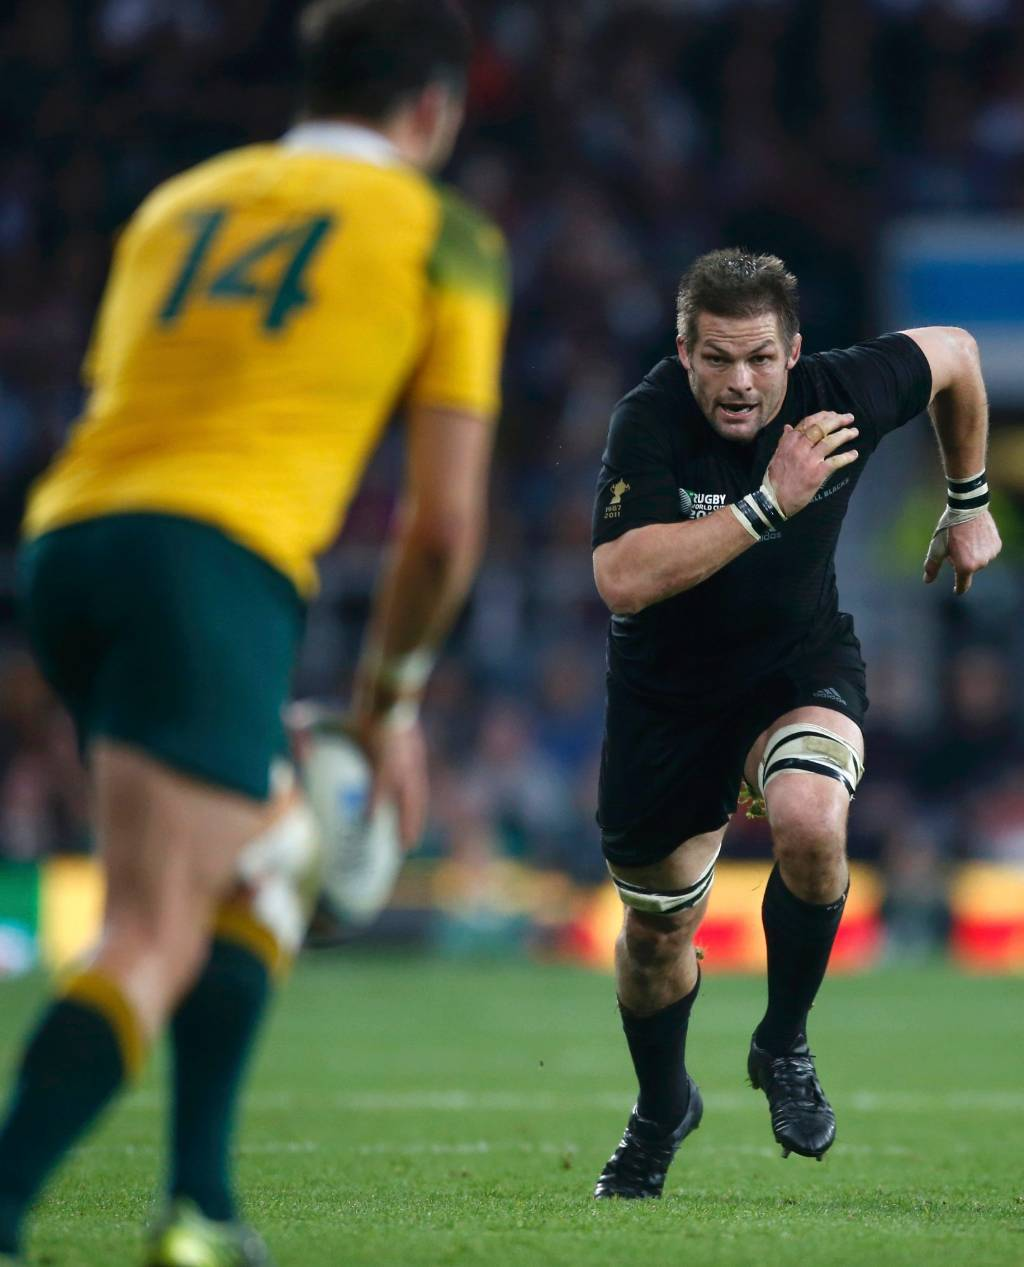 Sam Whitelock Breaks A Tackle: Rugby World Cup: All Blacks Make History As First Back-to